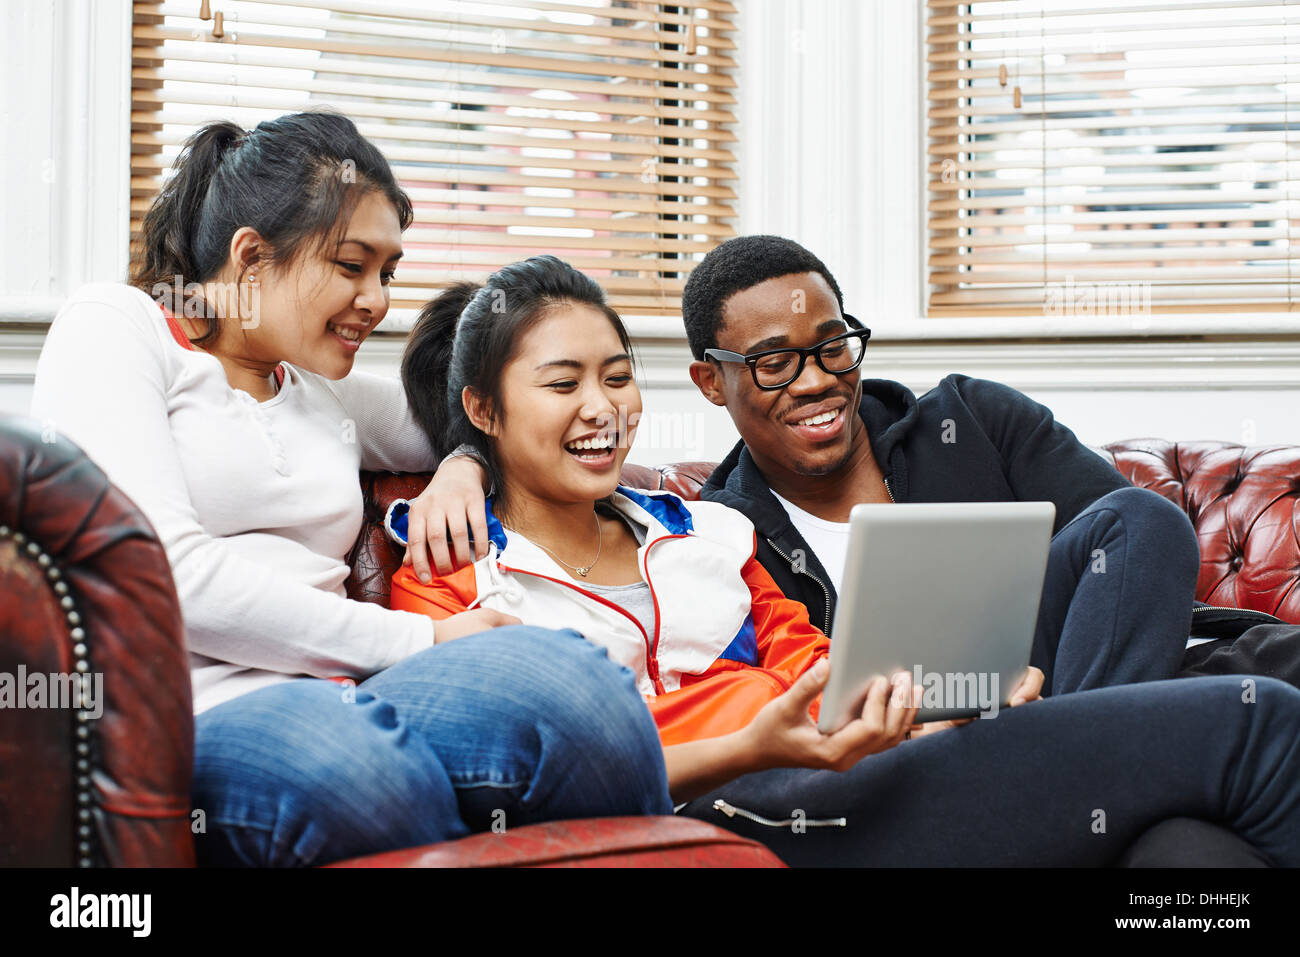 Three young adults sitting on sofa looking at digital tablet - Stock Image